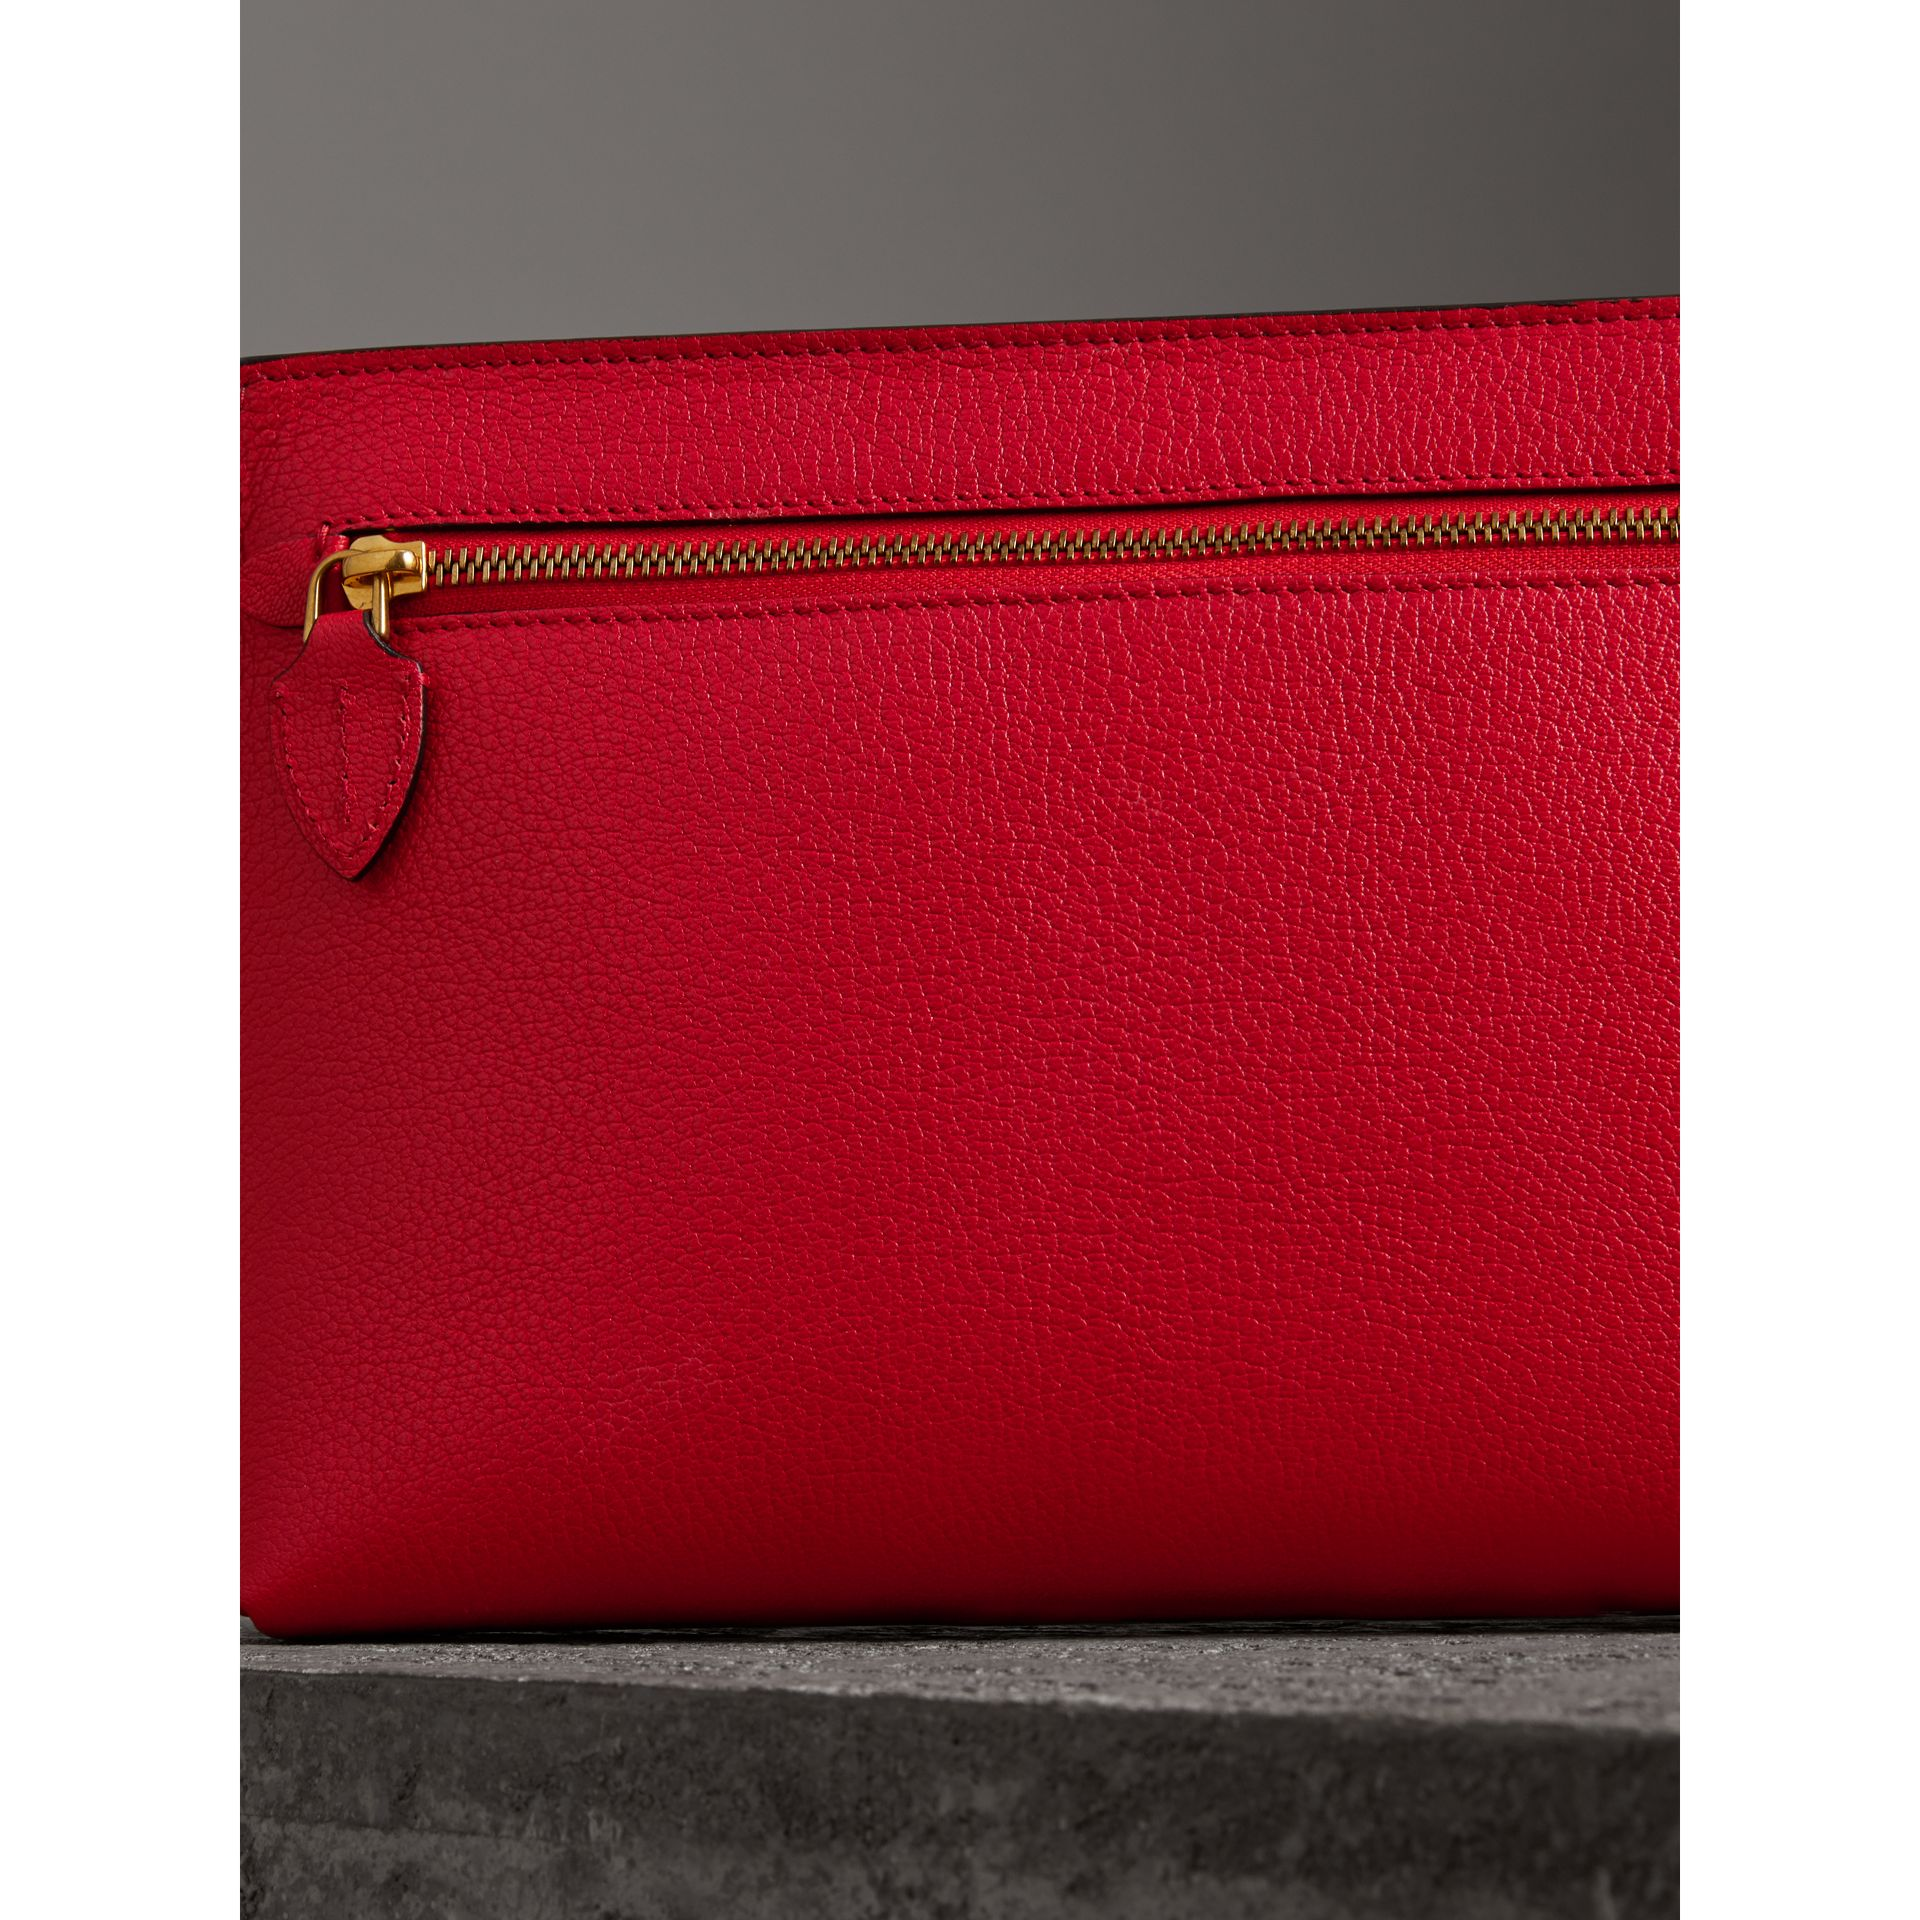 Grainy Leather Wristlet Clutch in Bright Red - Women | Burberry United Kingdom - gallery image 4